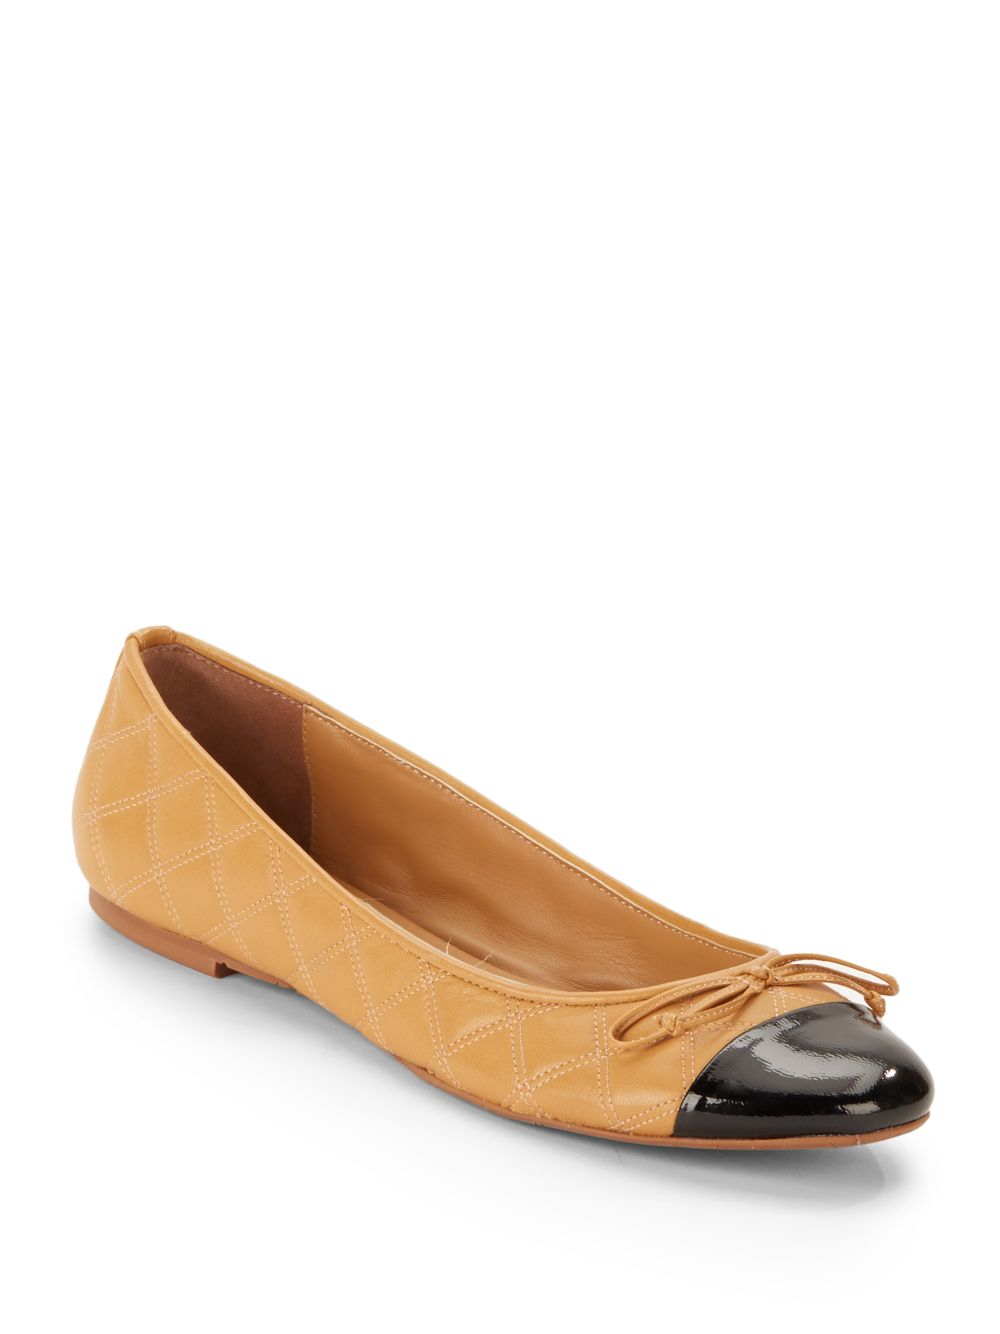 Leather Upper And Lining Shoes